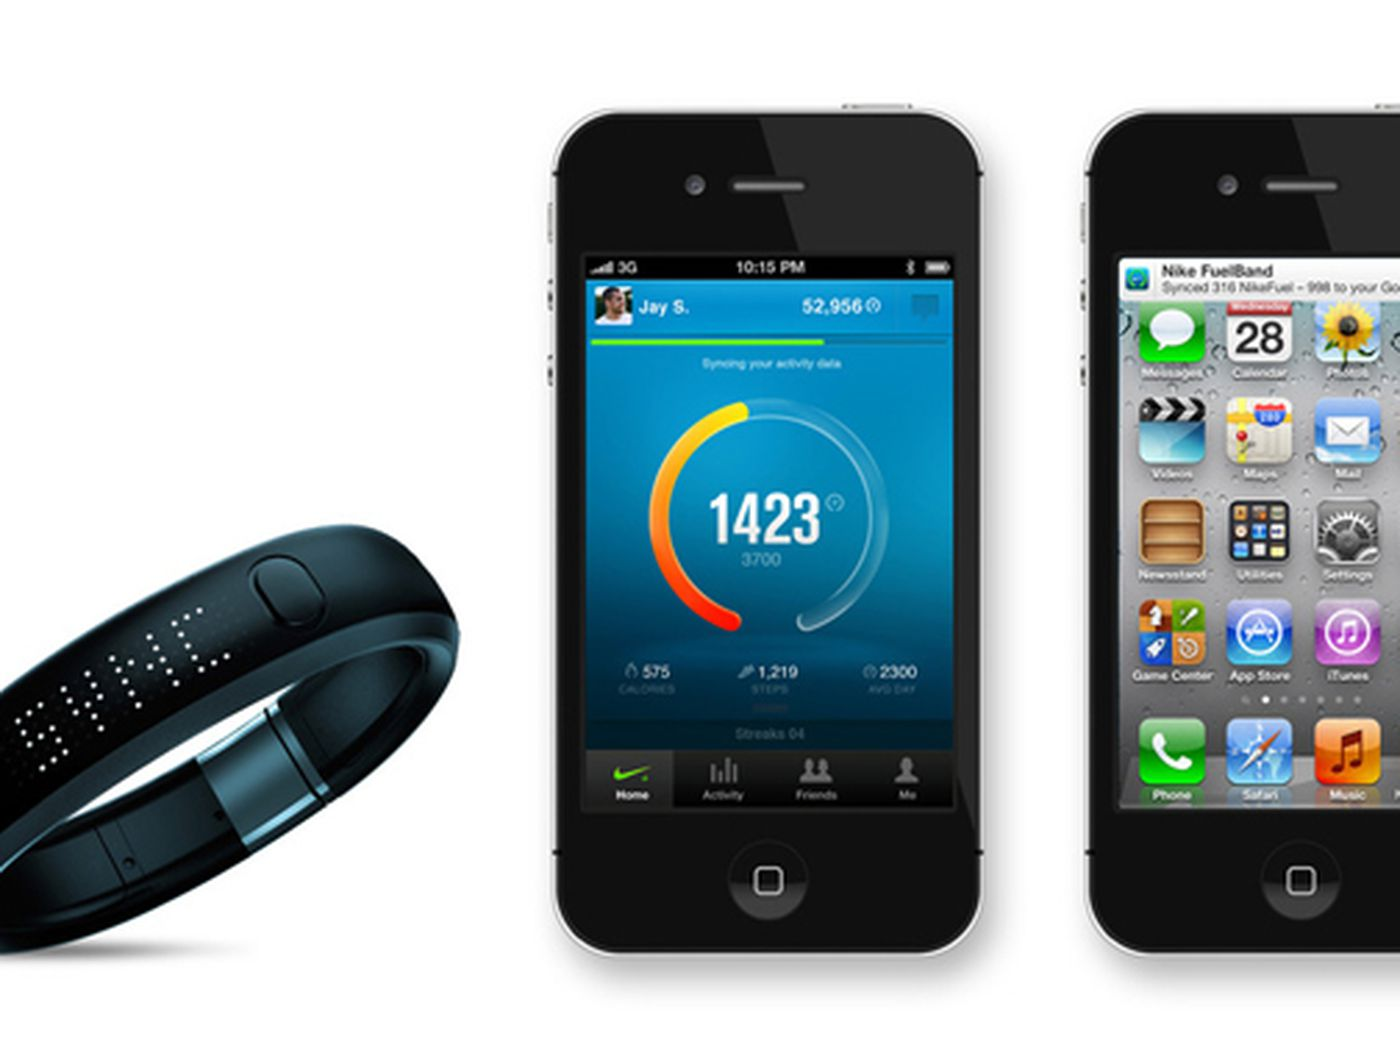 Tumba Prehistórico Muscular  Nike+ FuelBand app for iOS updated with background syncing and battery  meter - The Verge